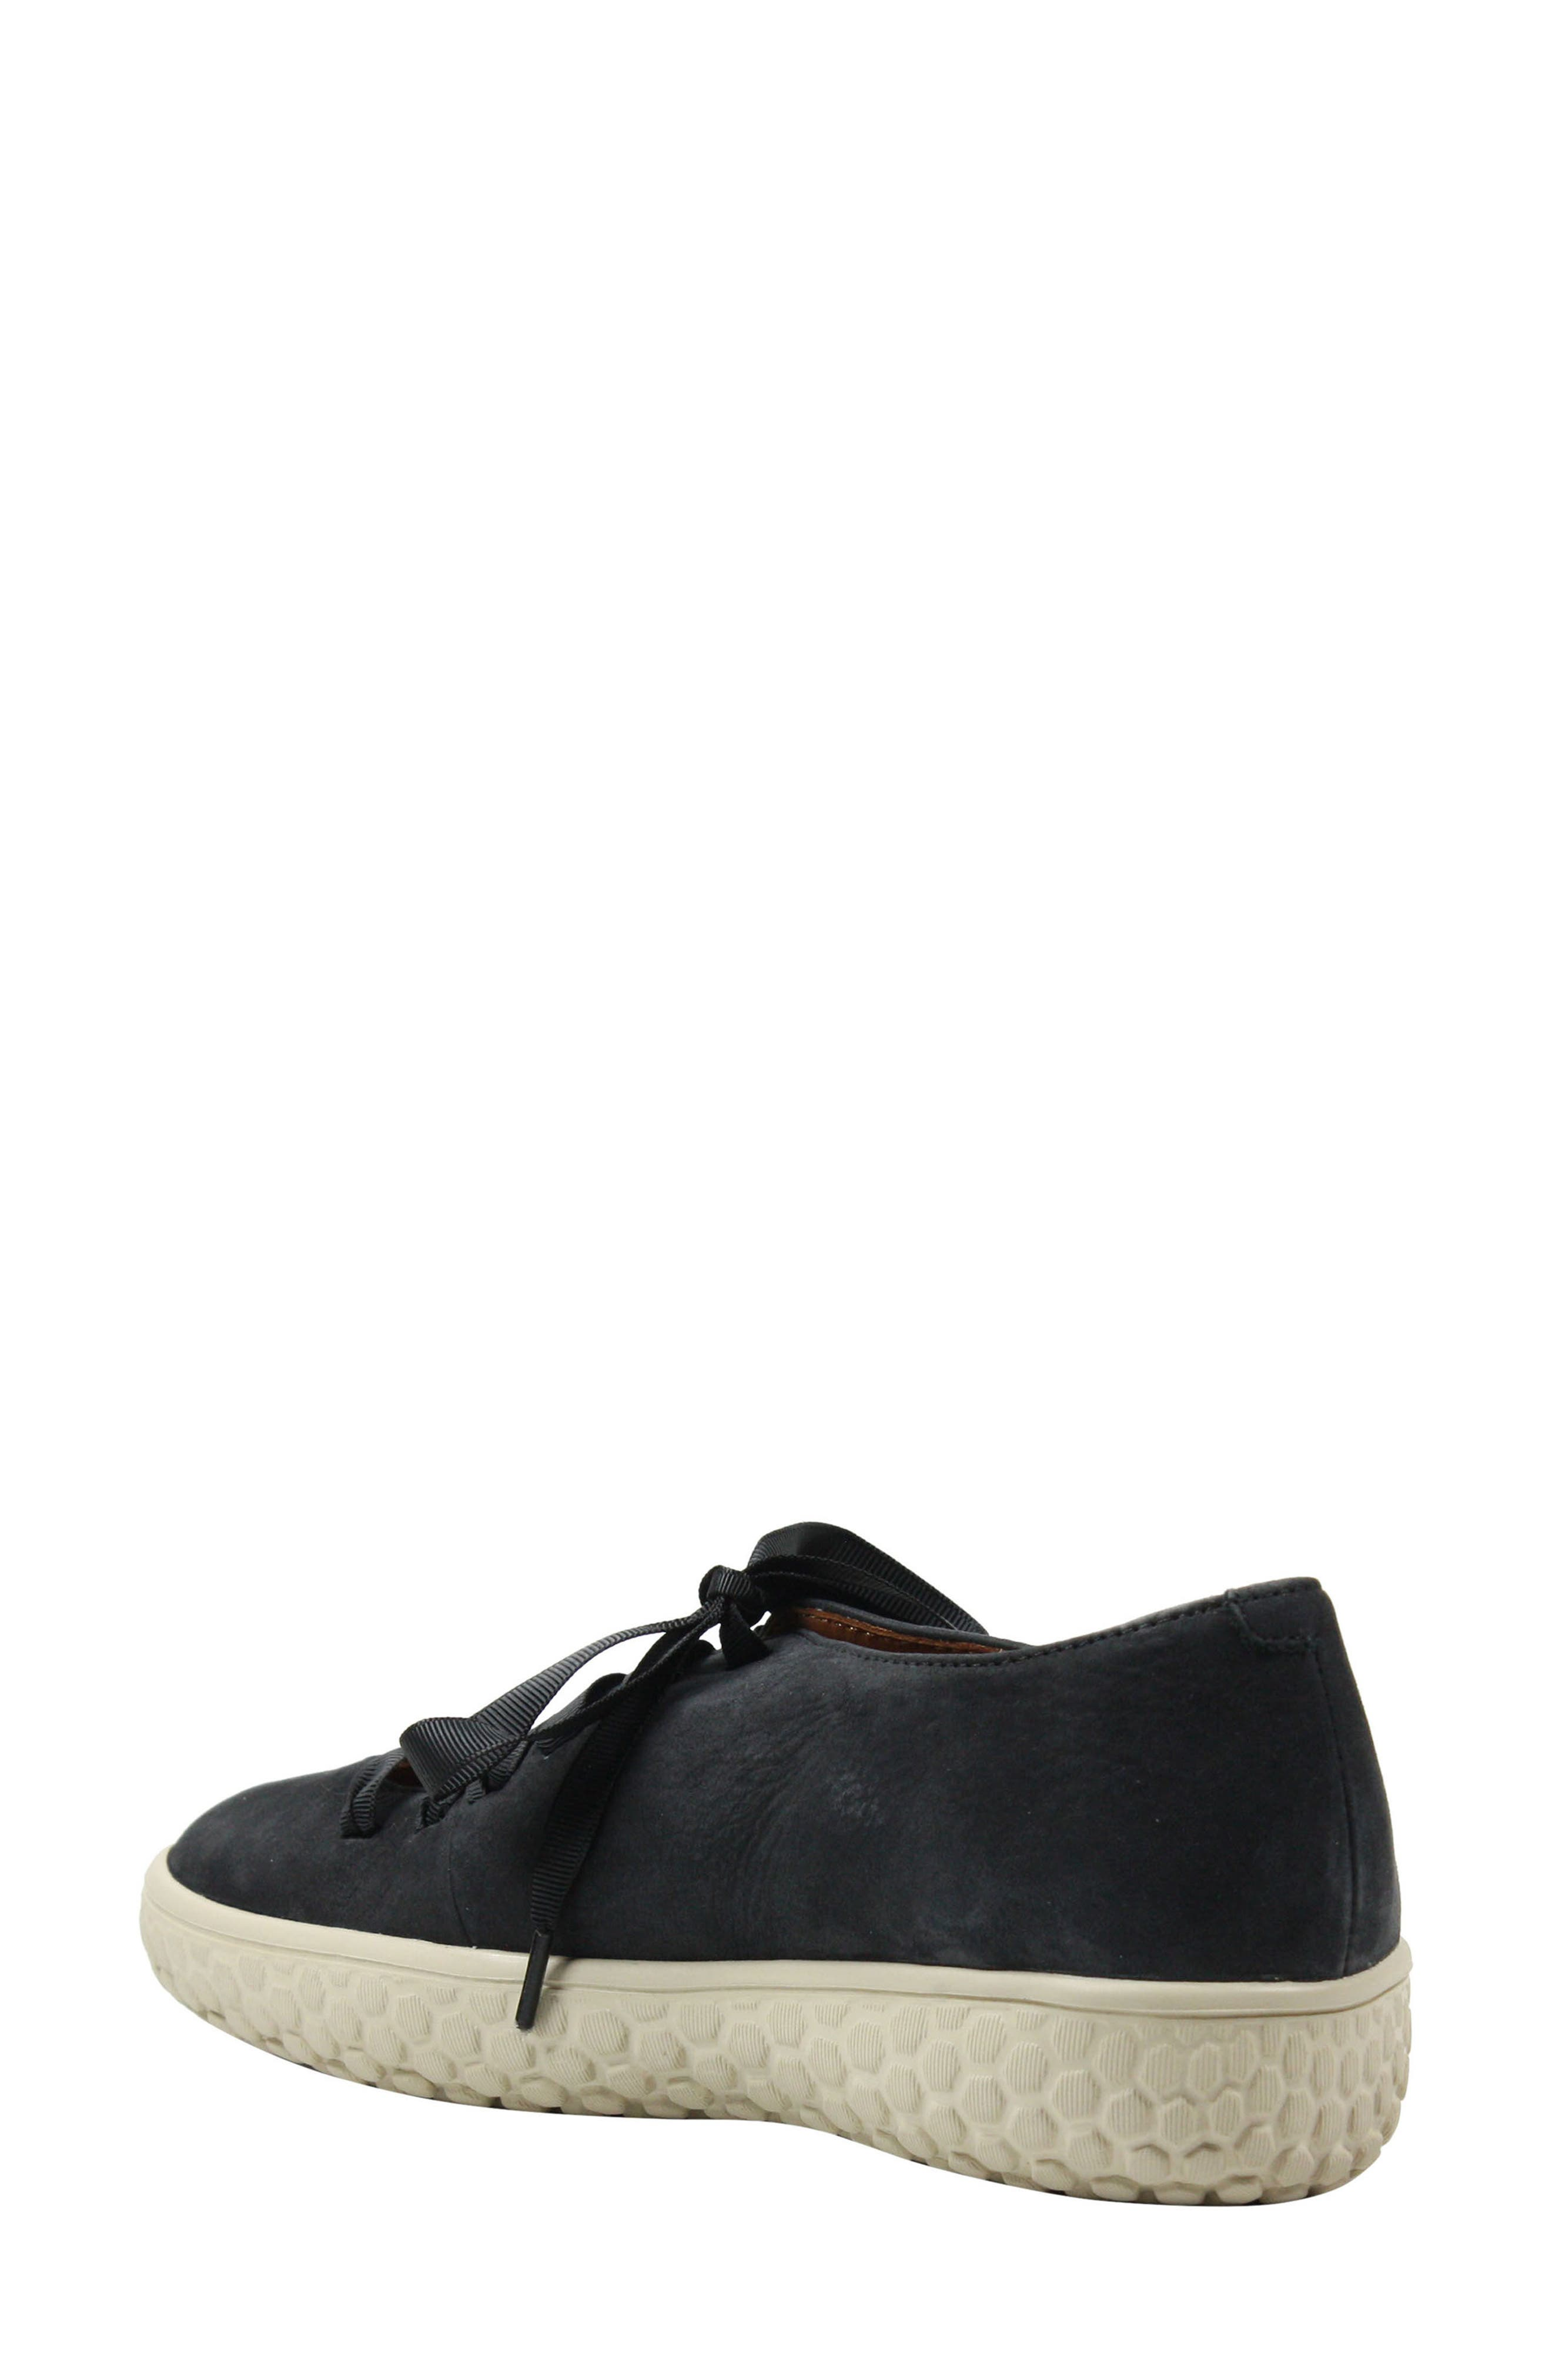 Zaheera Sneaker,                             Alternate thumbnail 2, color,                             Black Nubuck Leather